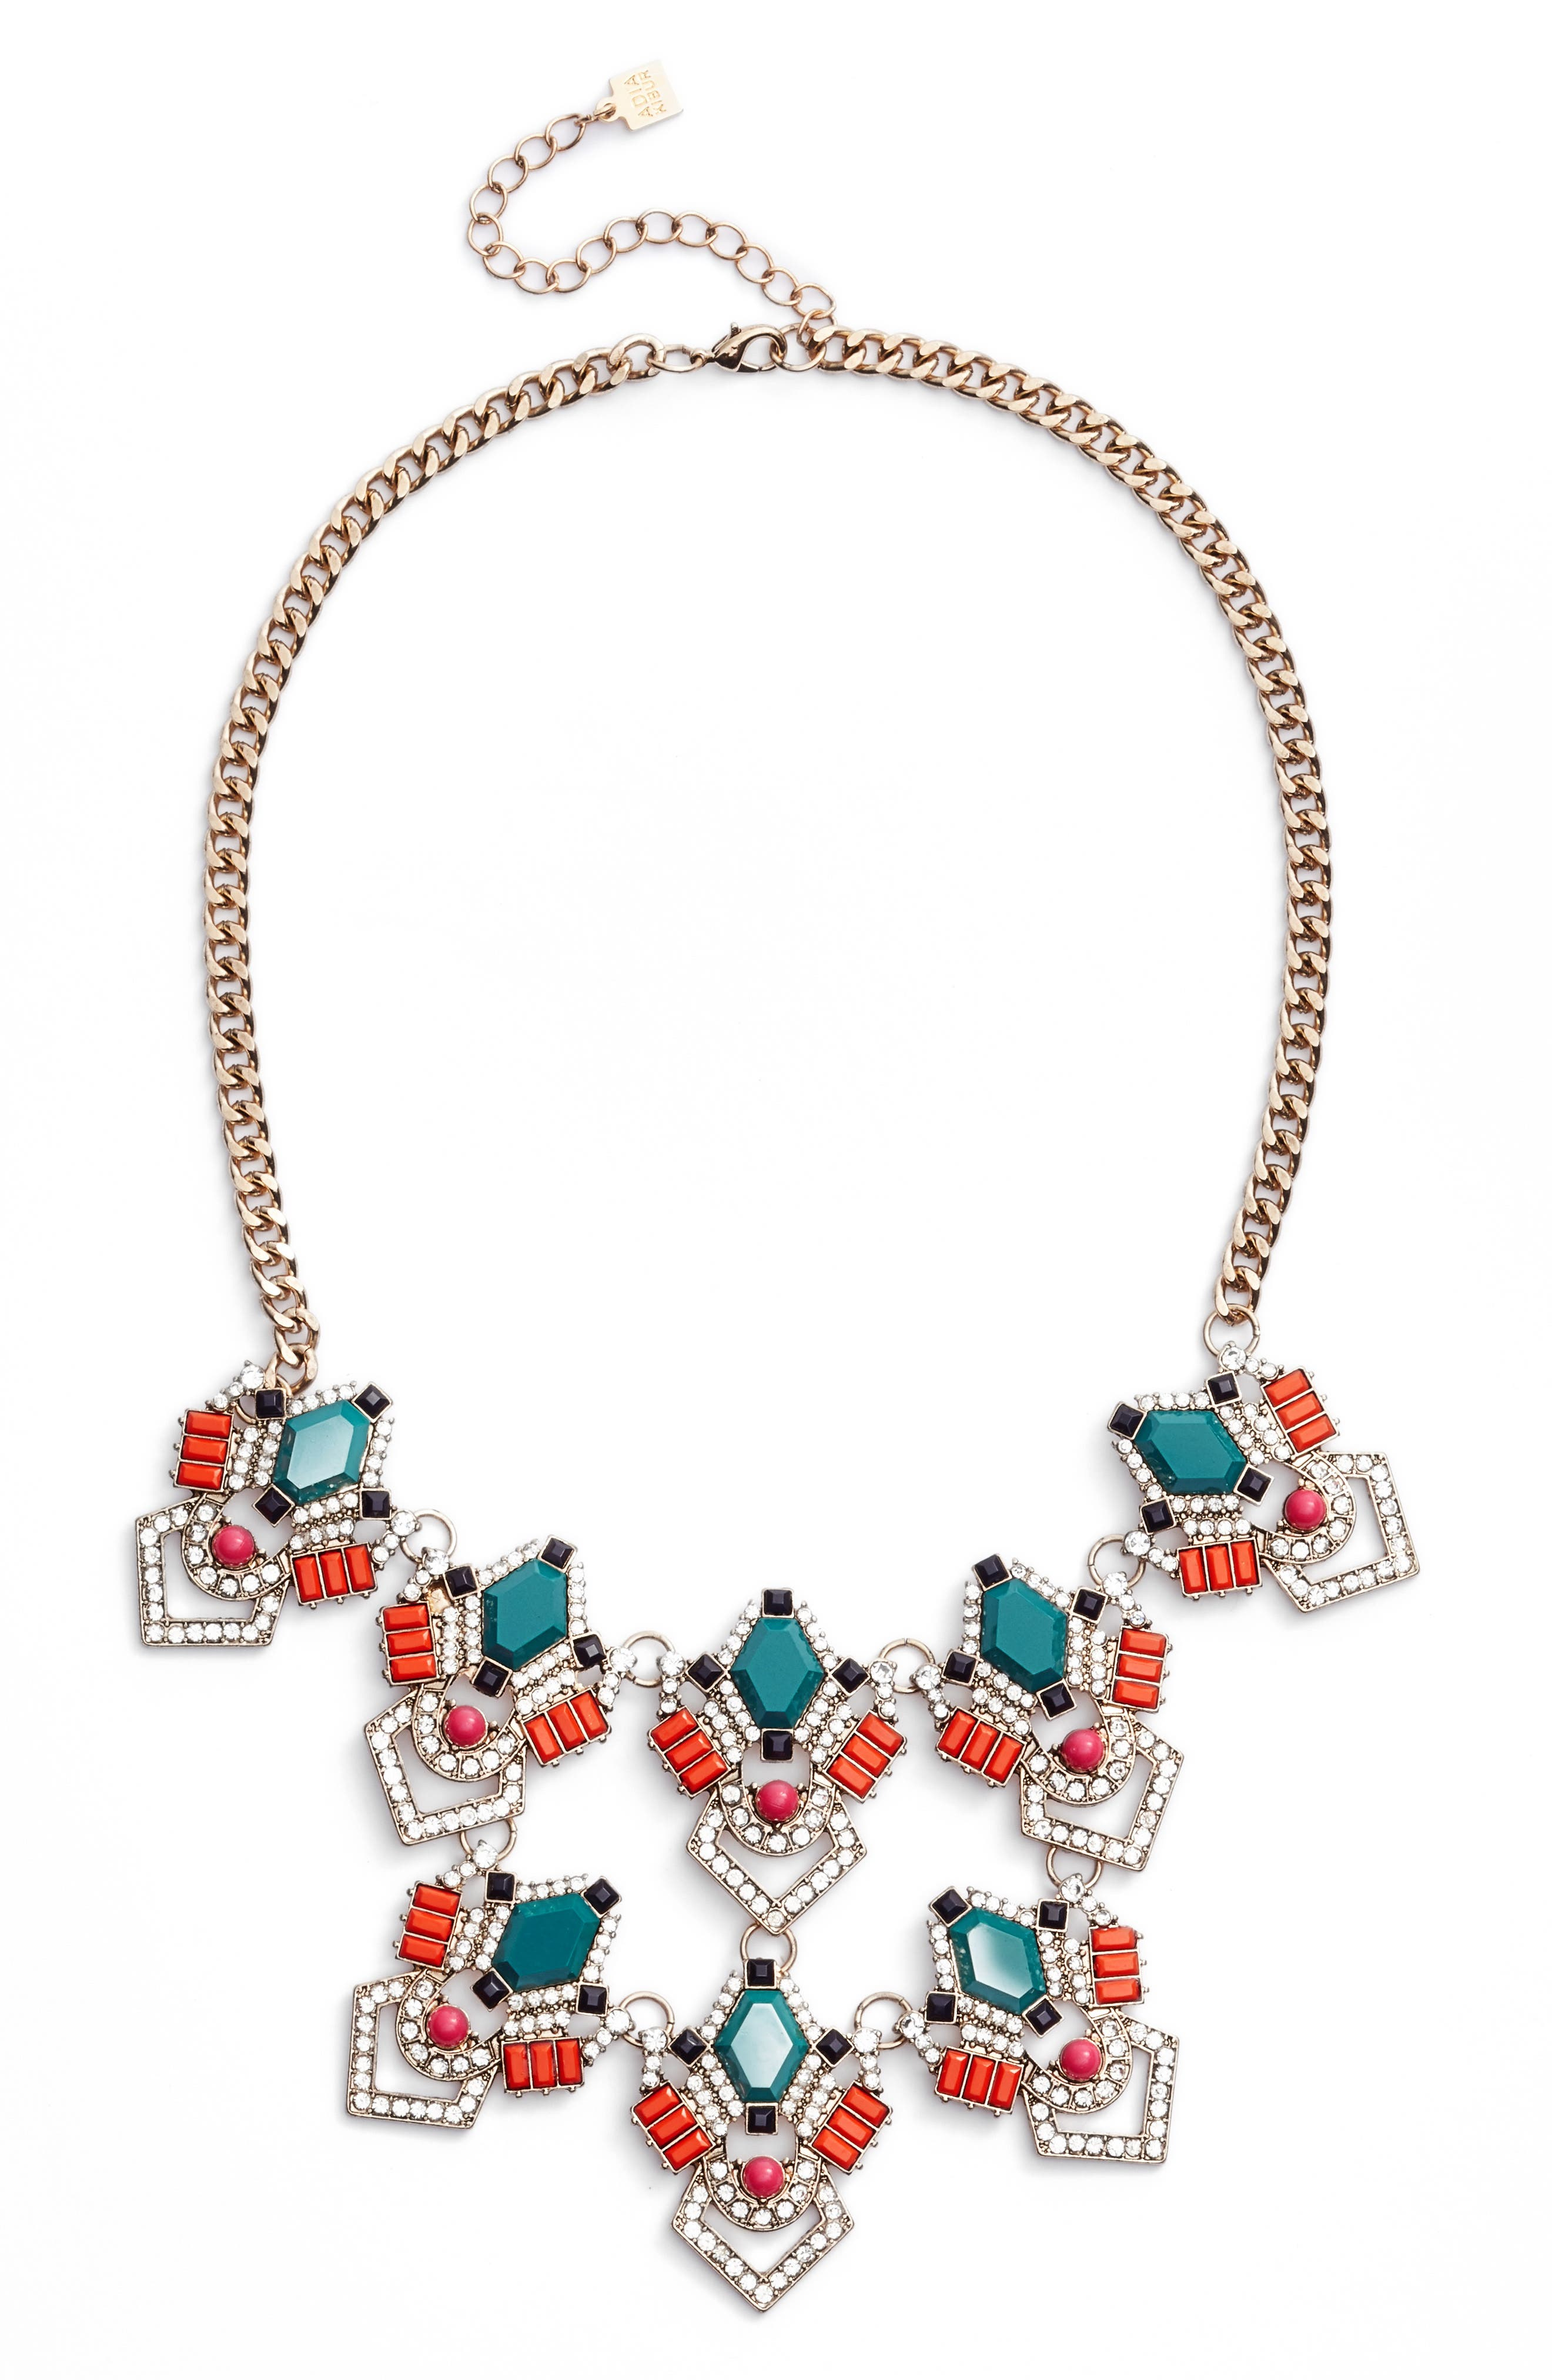 Stone & Crystal Statement Necklace,                         Main,                         color, Teal